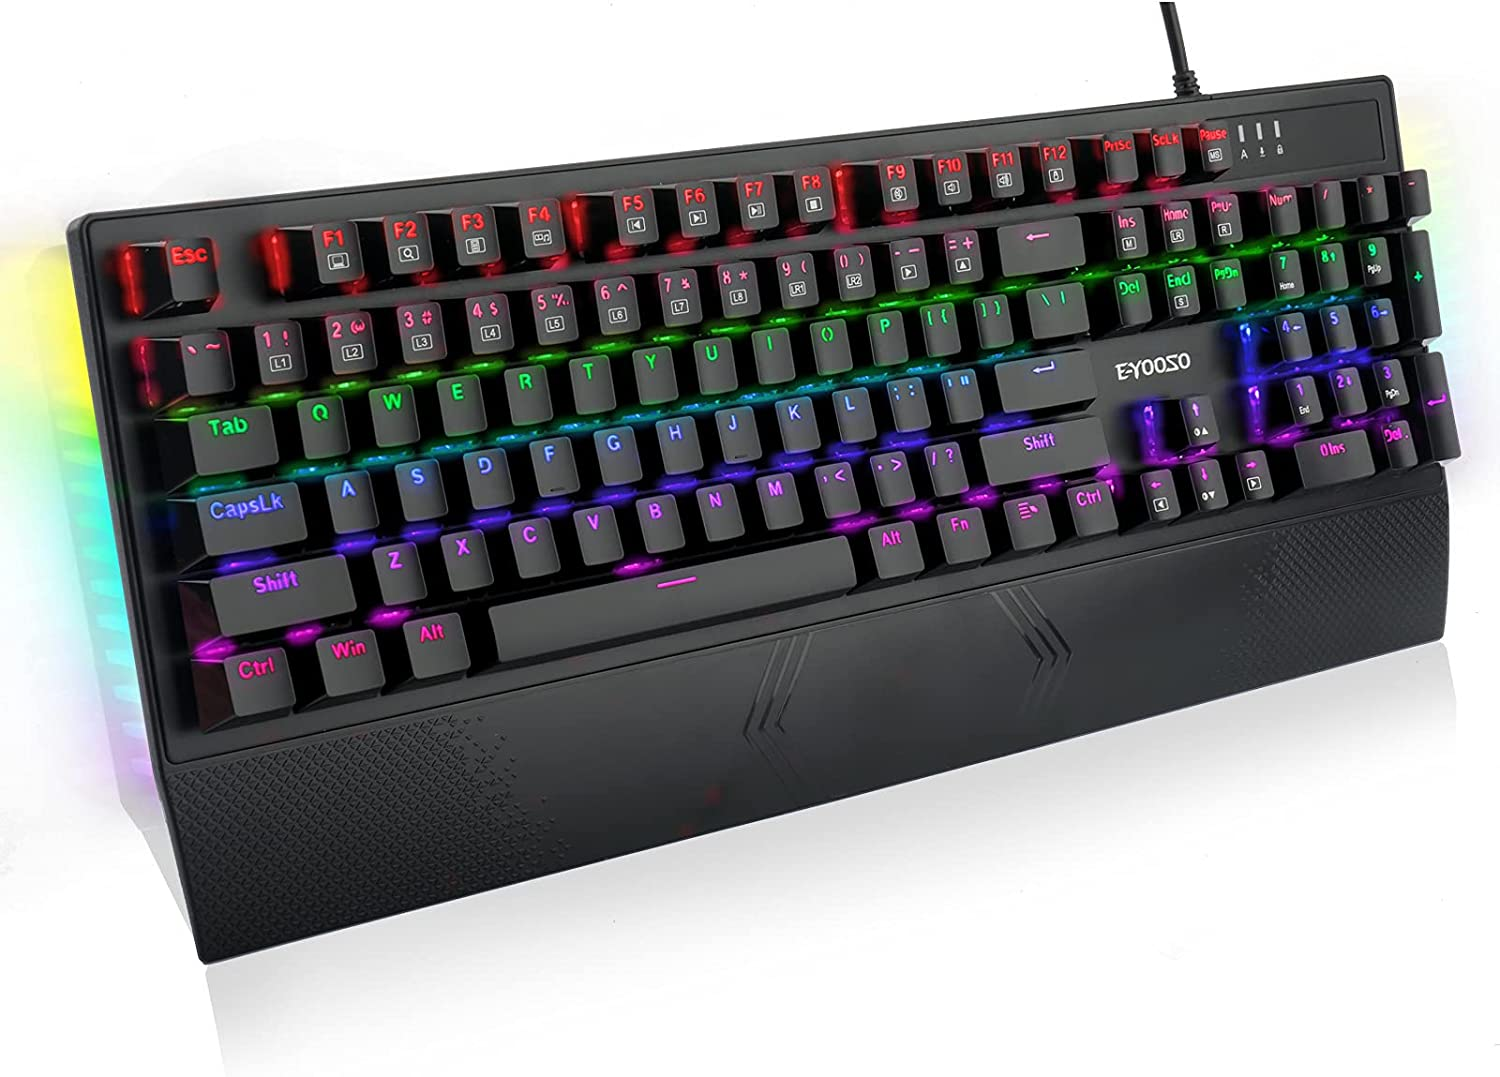 Mechanical Keyboard, E-YOOSO Mechanical Gaming Keyboard 104 Keys Keyboard Gaming, Wired Keyboard Mechanical with Rainbow Backlit & RGB LED Side Light, Keyboard with Blue Switches for Windows Gaming PC